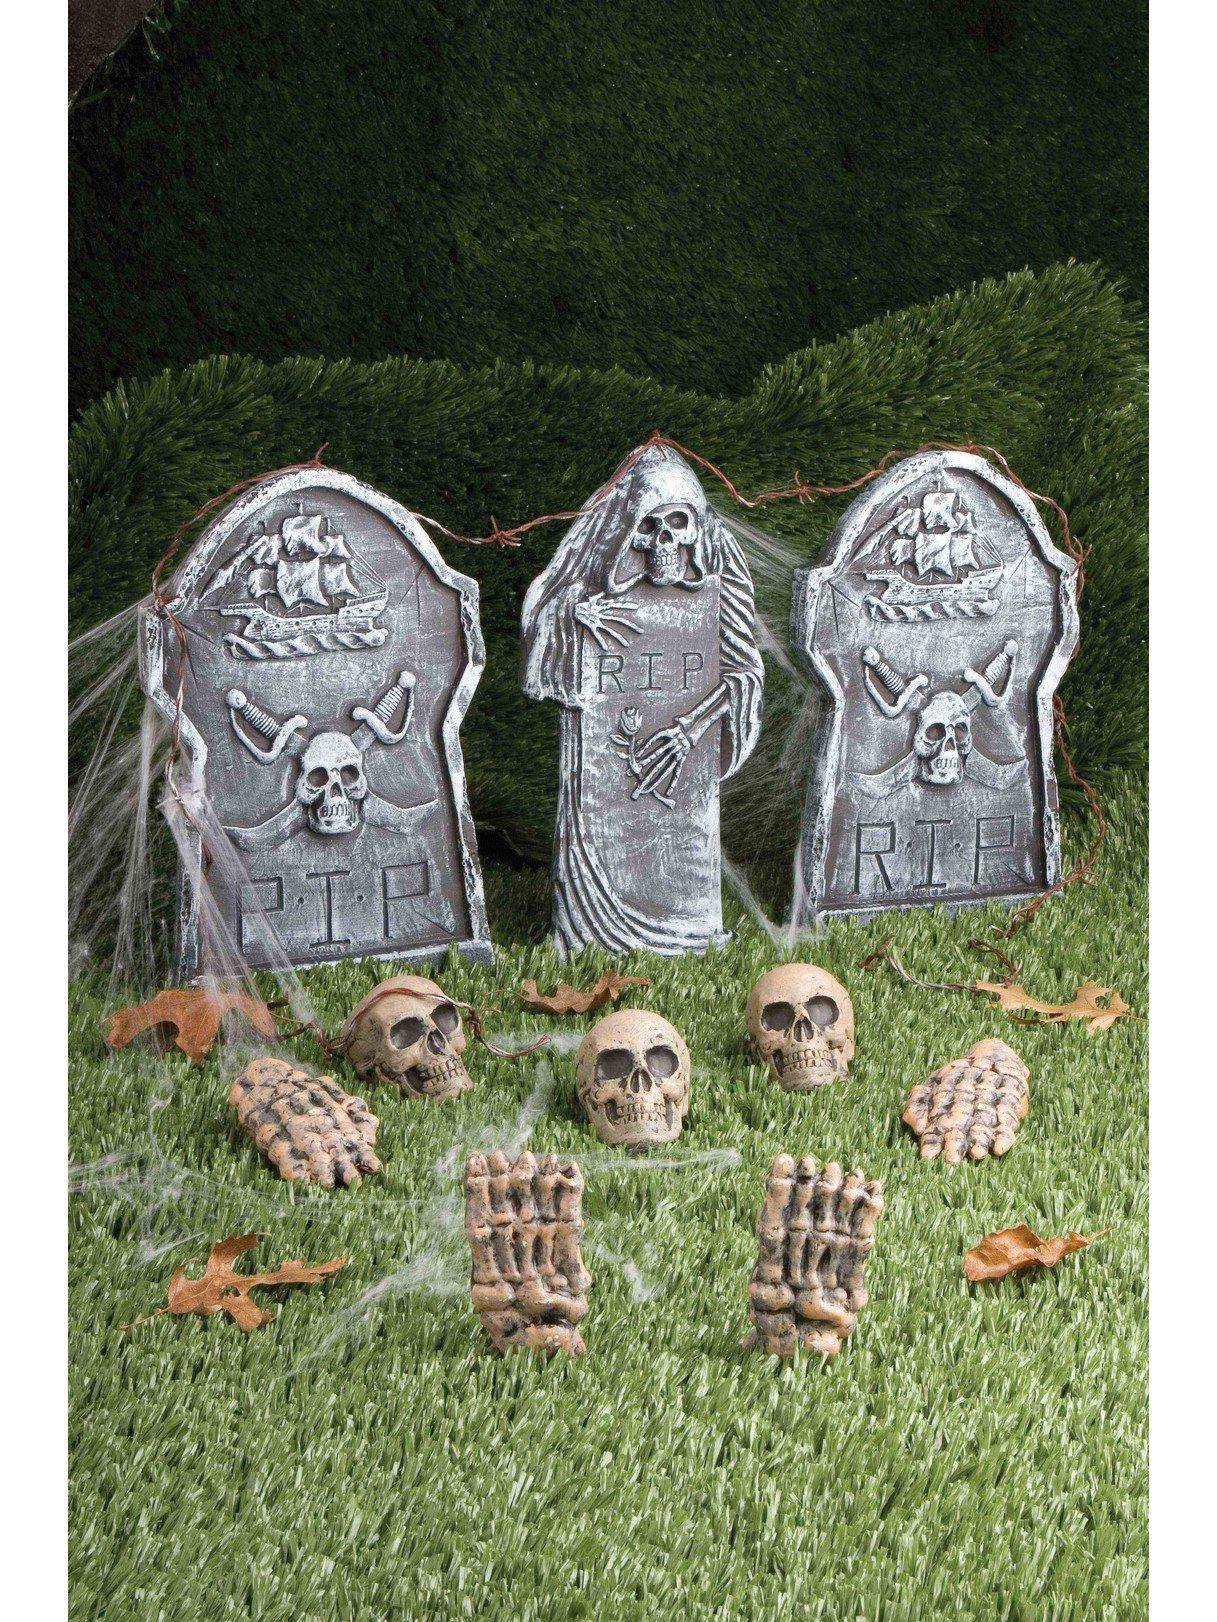 12 piece Cemetery Decoration Kit Halloween Decorations for